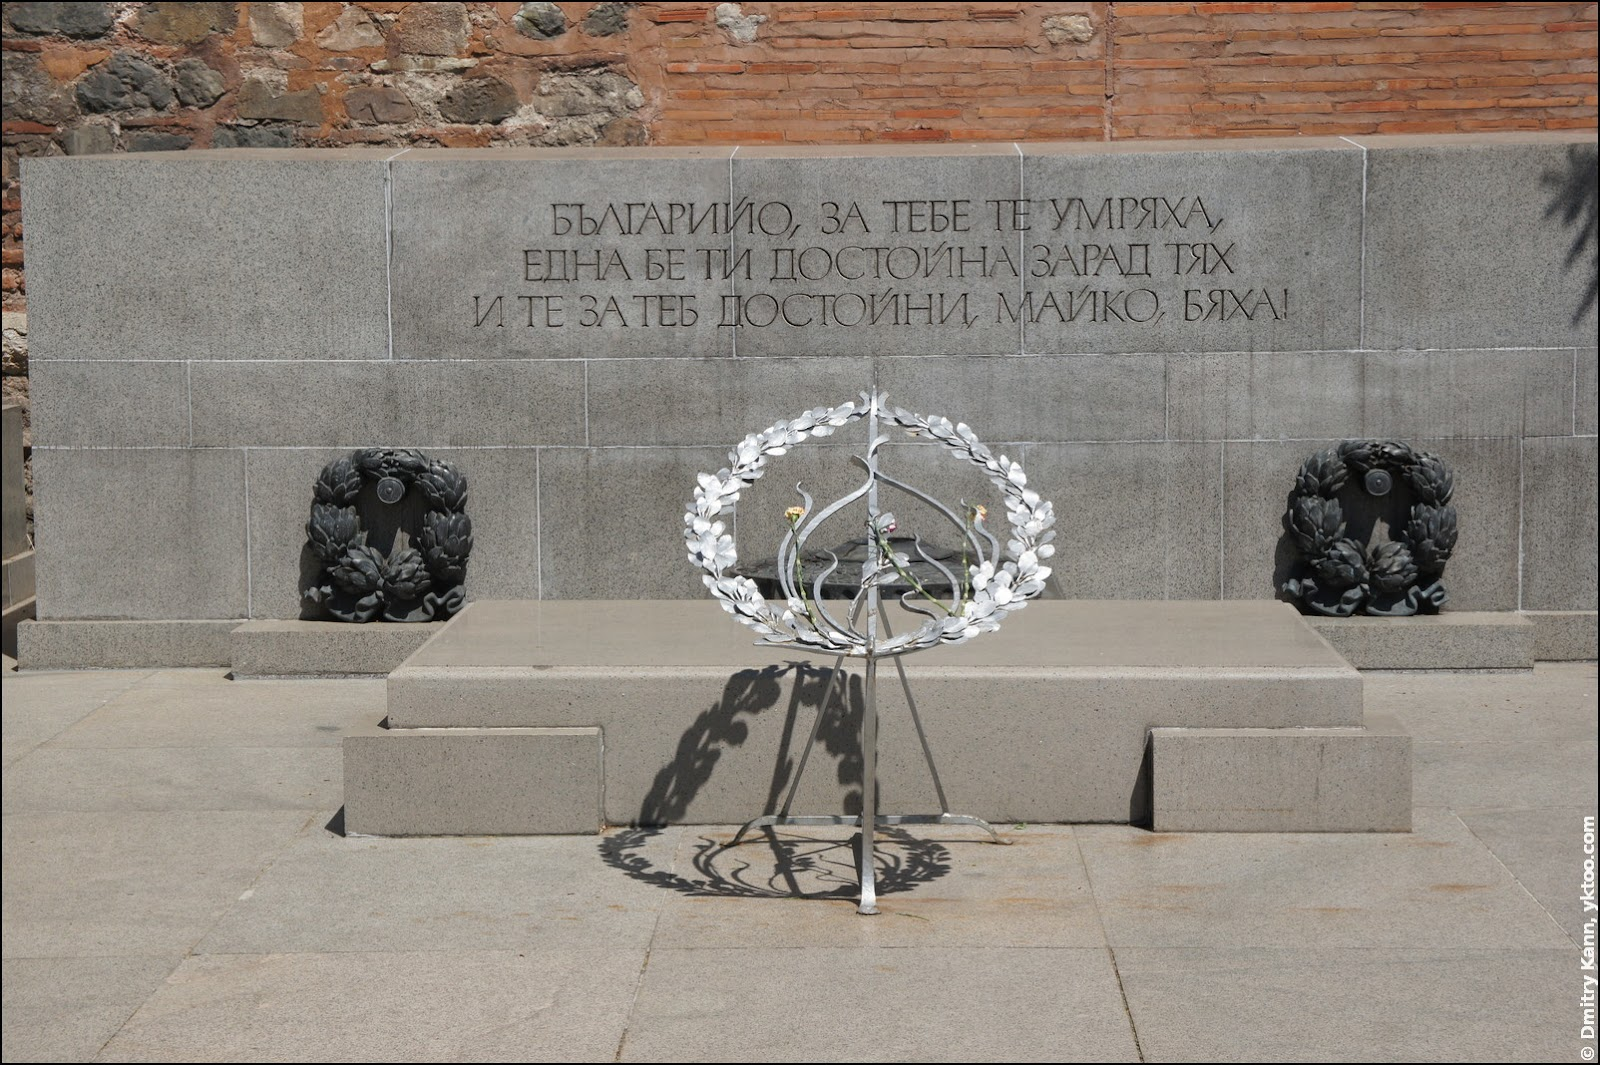 Monument to the Unknown Soldier.